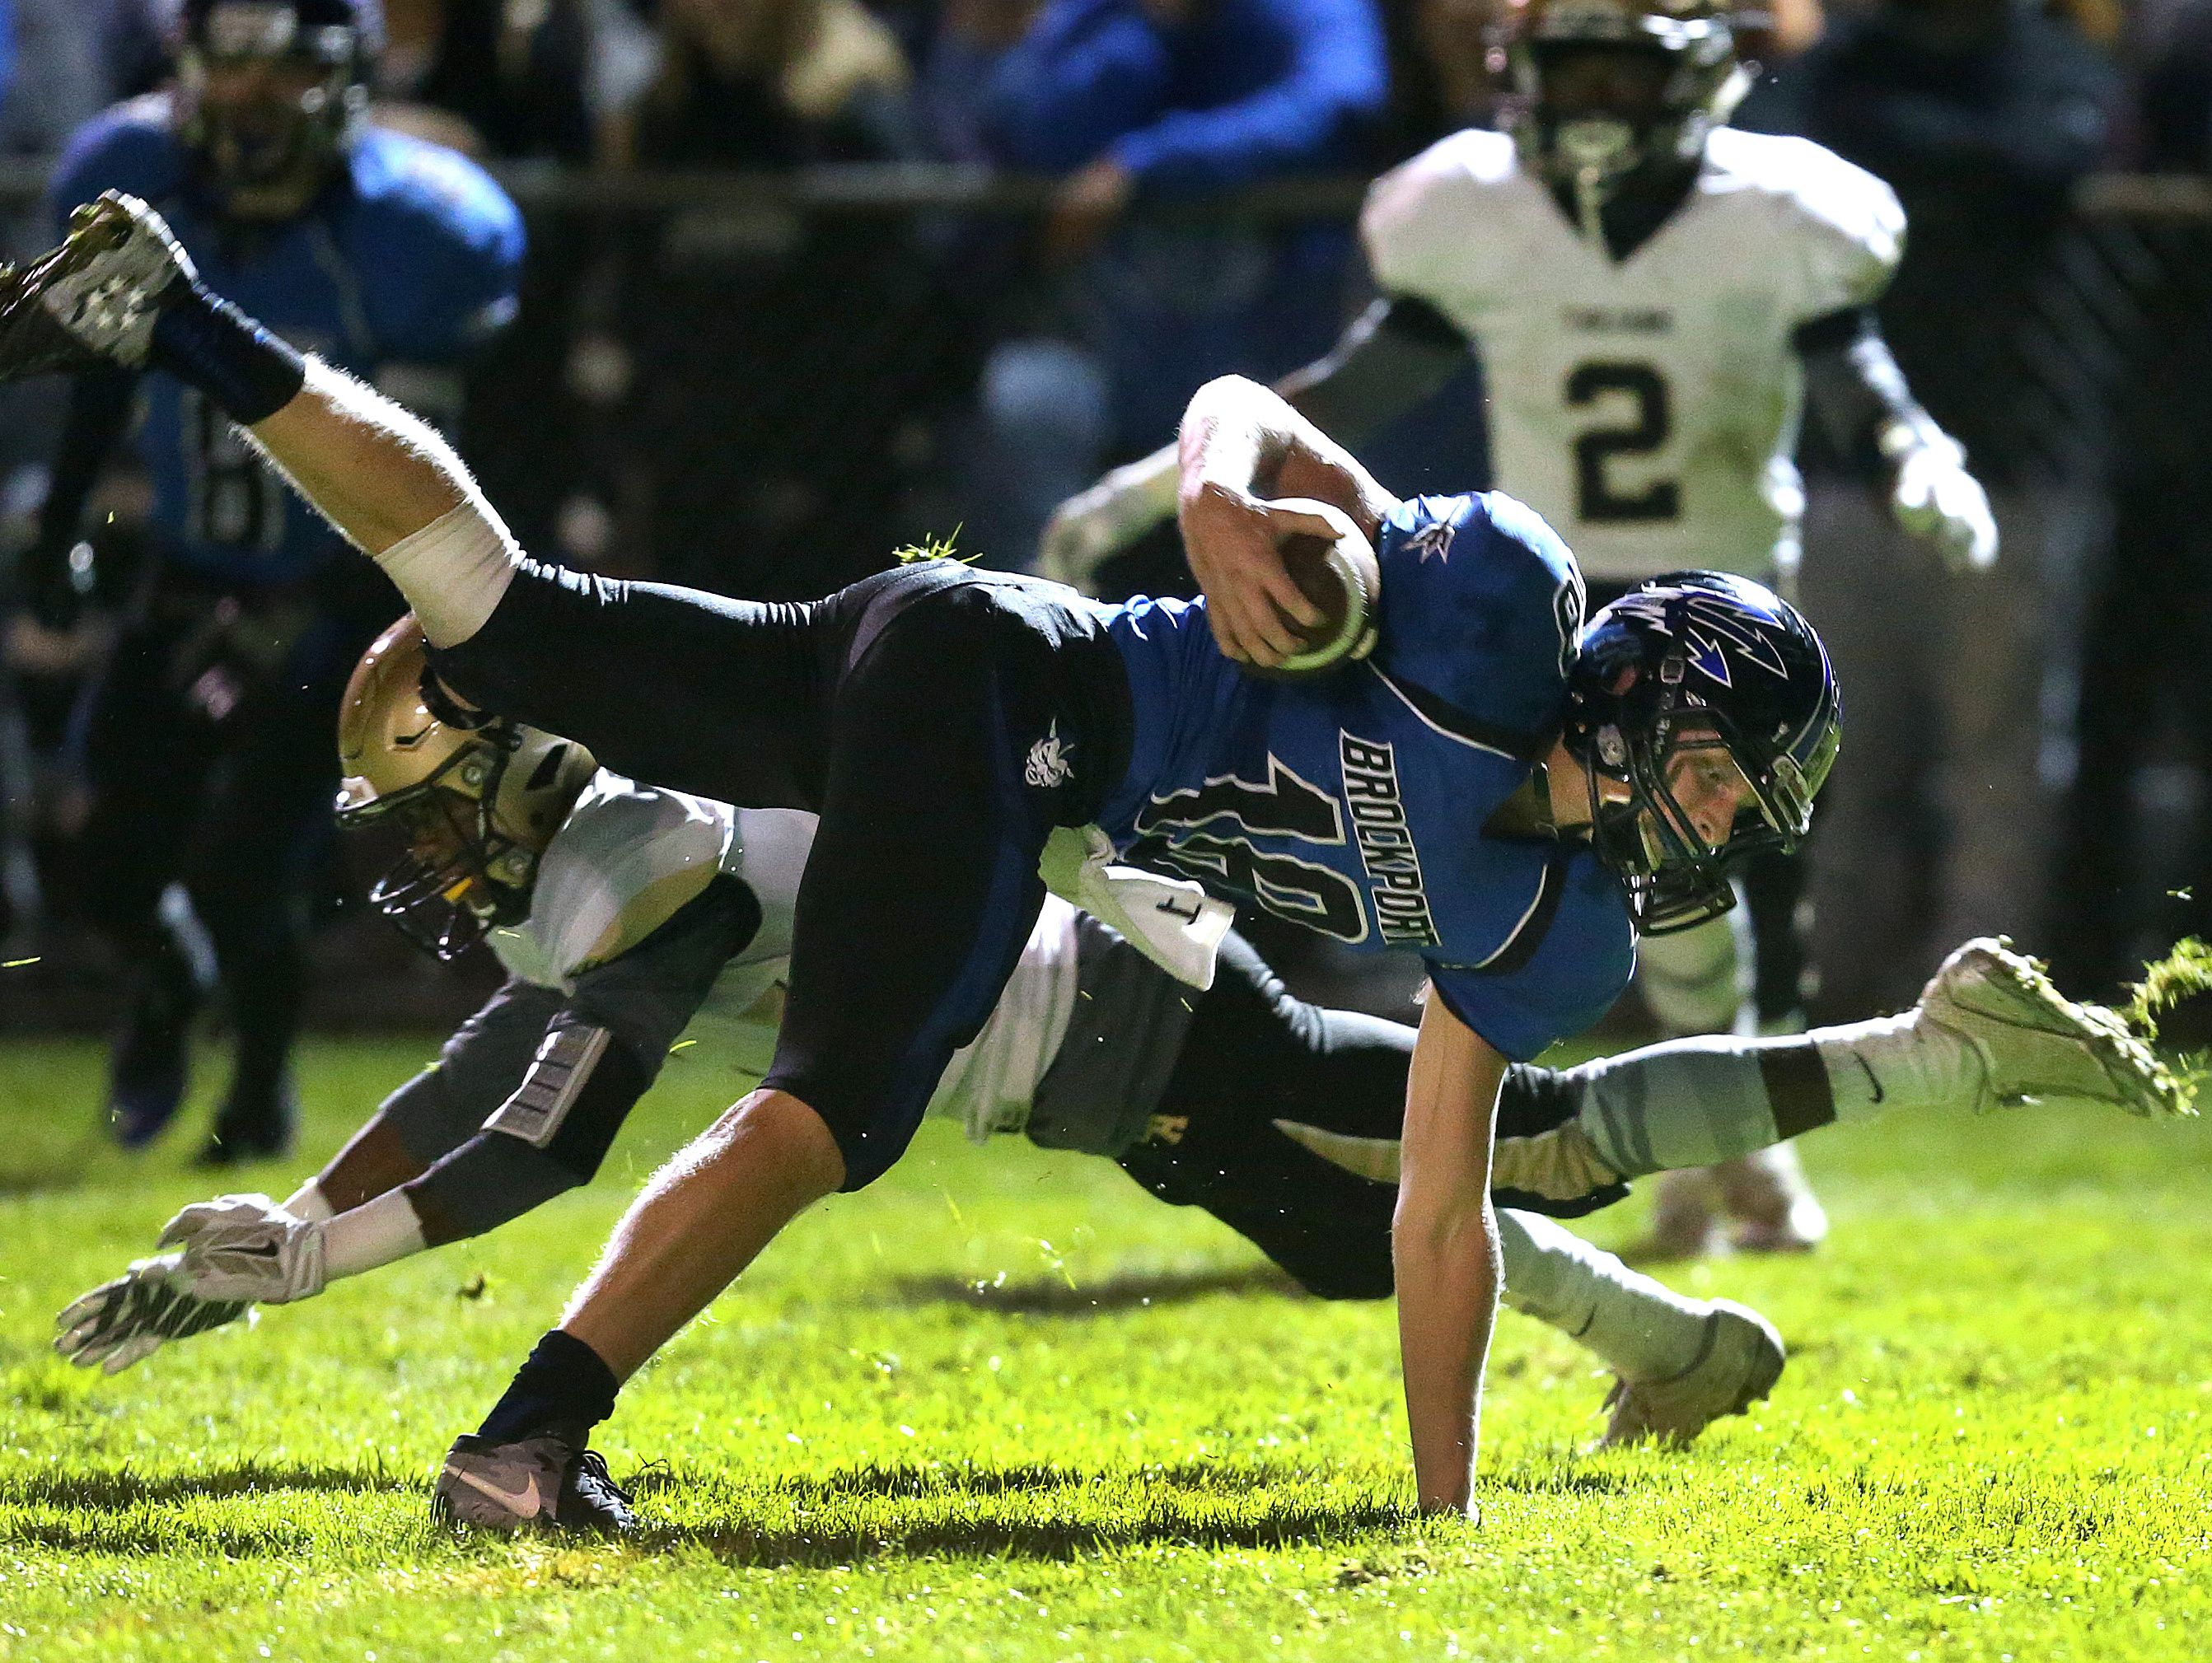 Brockport receiver Nick Brauch (18) is tackled by Athena's Kenny Speed (4) after a catch.